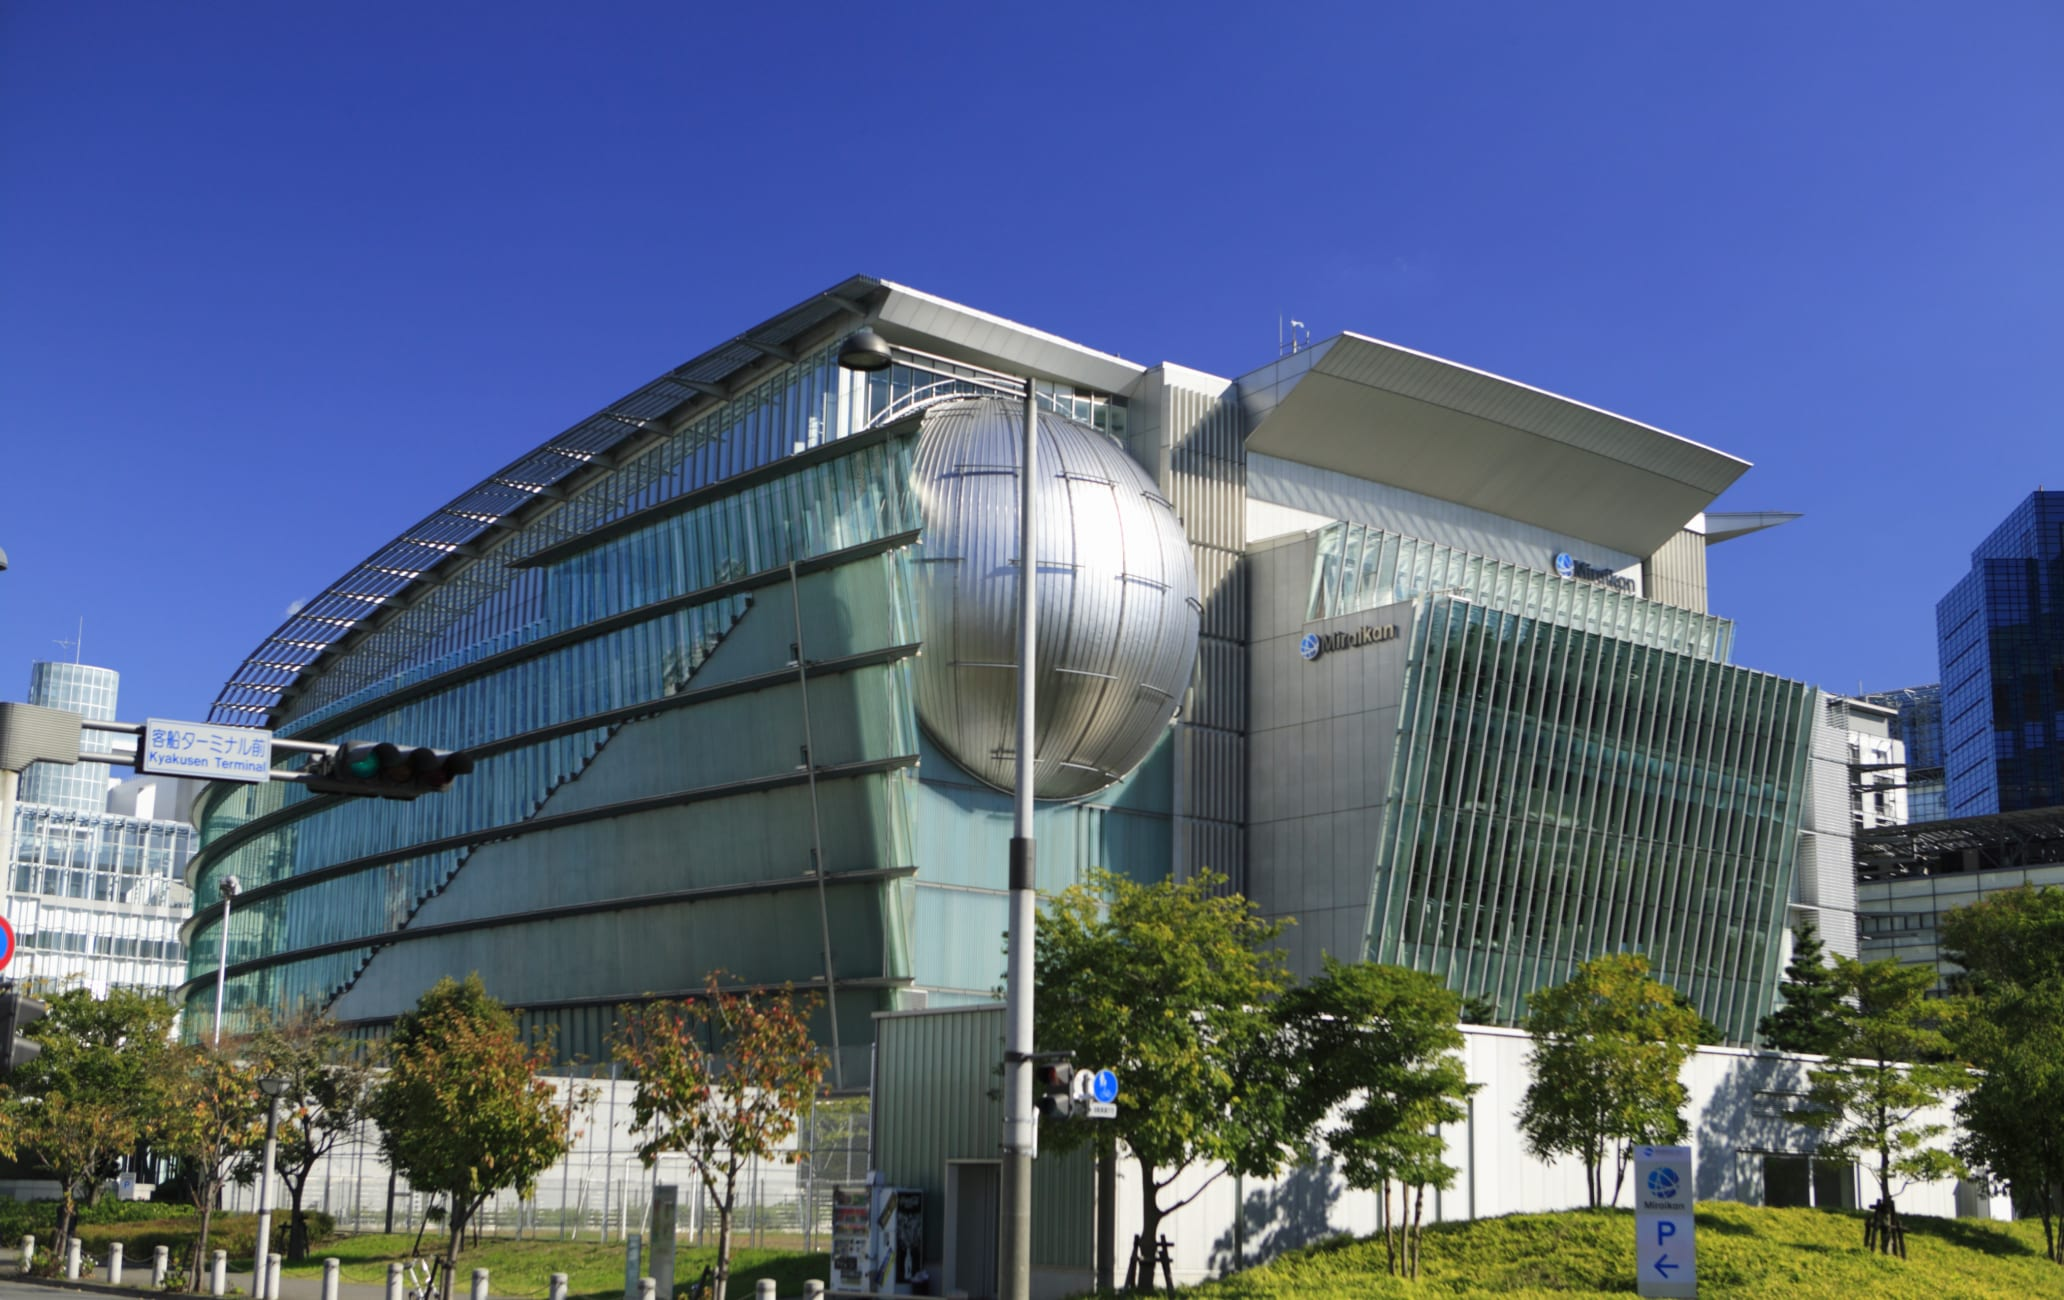 National Museum of Emerging Science and Innovation -Miraikan